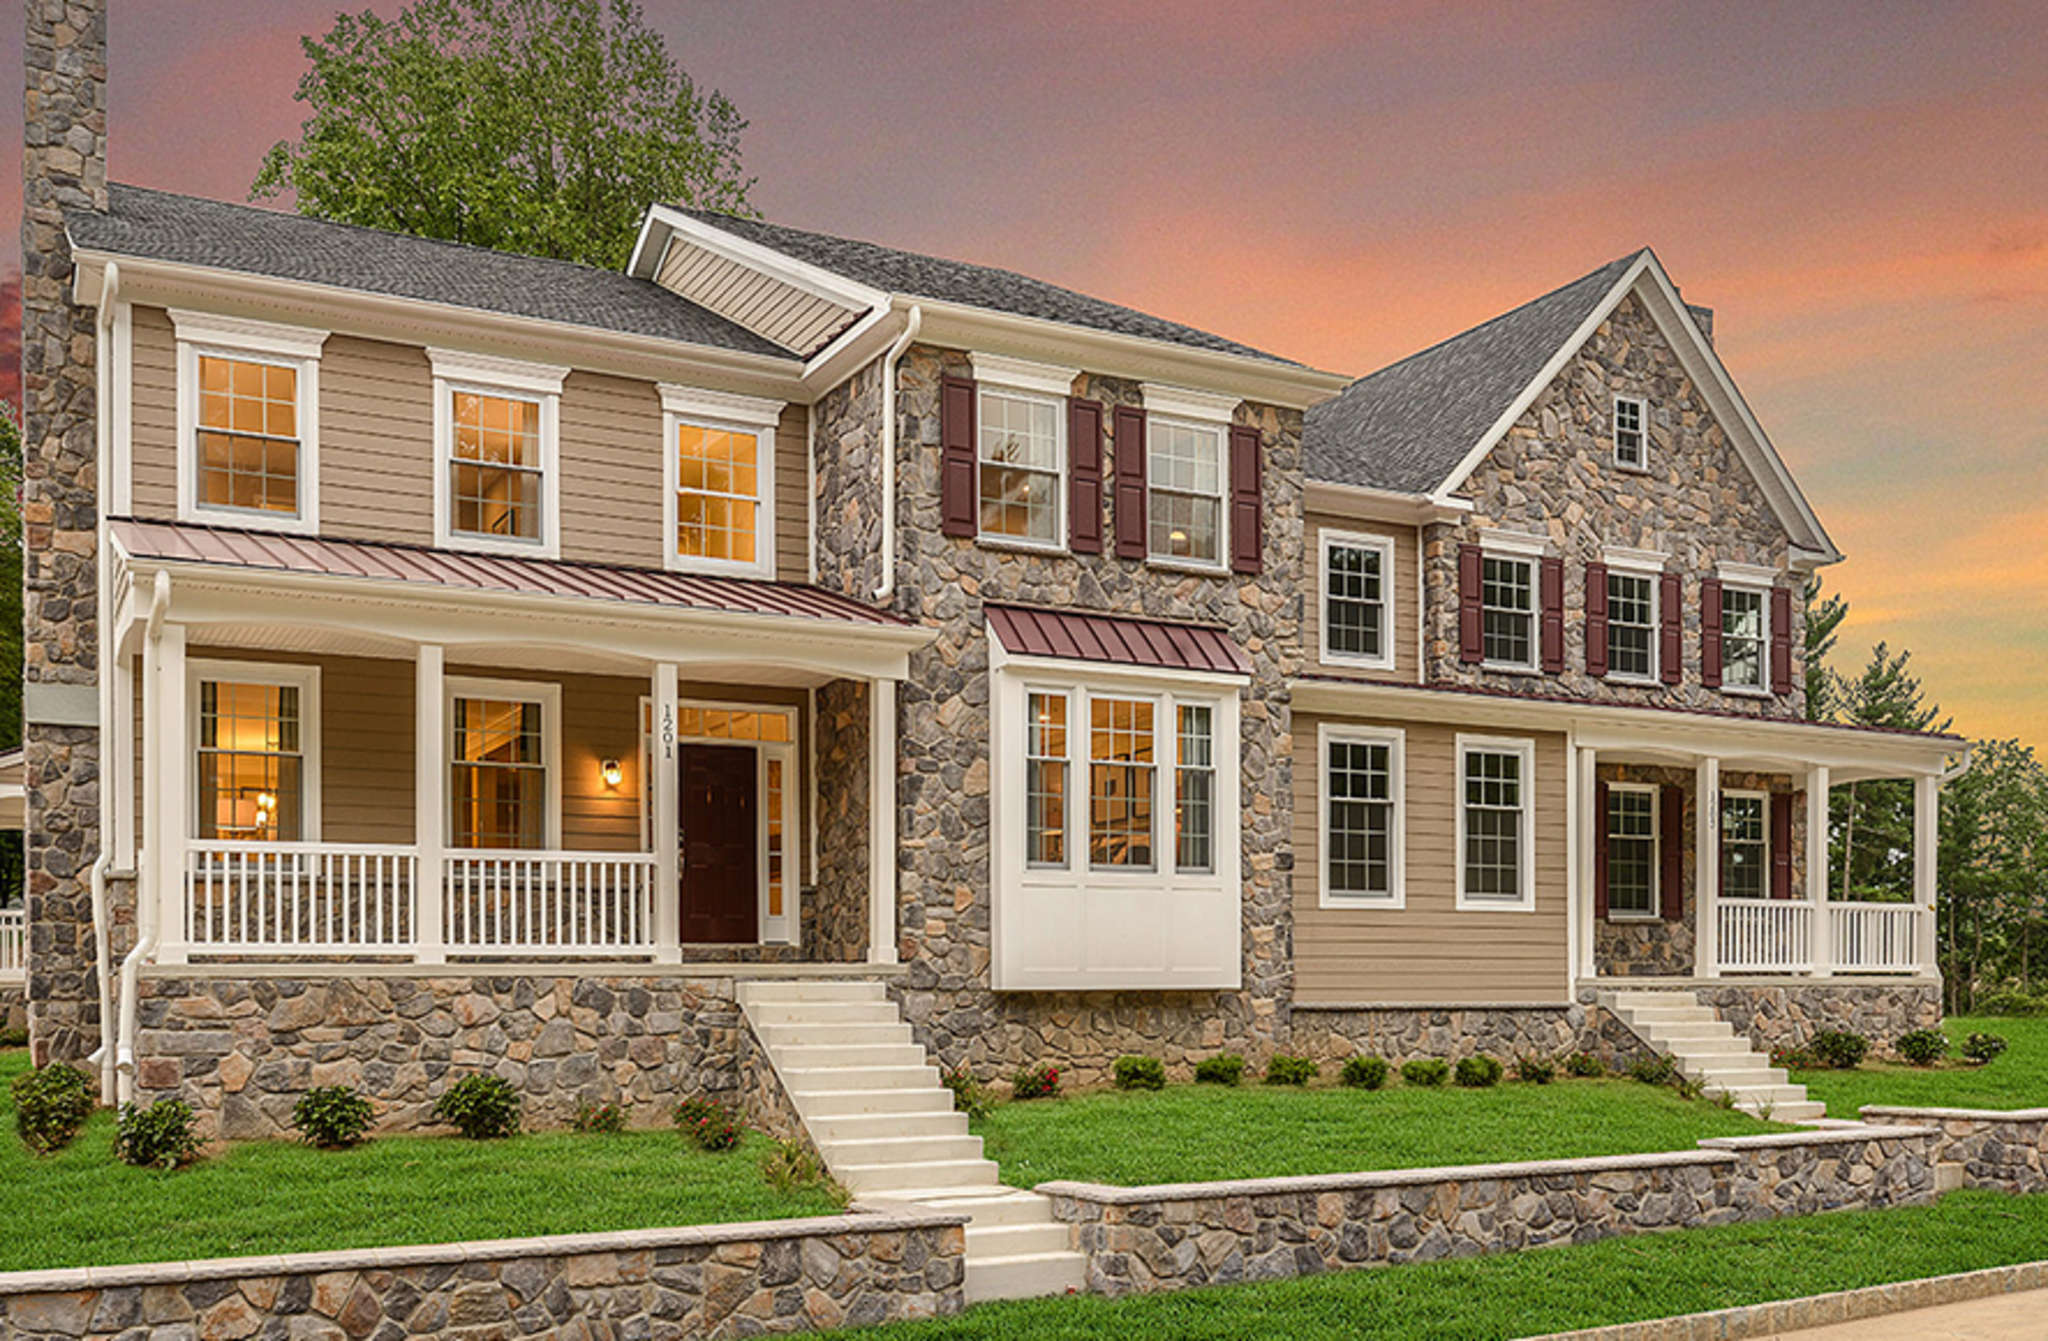 The newest CalAtlantic project is Marshallton Walk in West Bradford Township, Chester County.